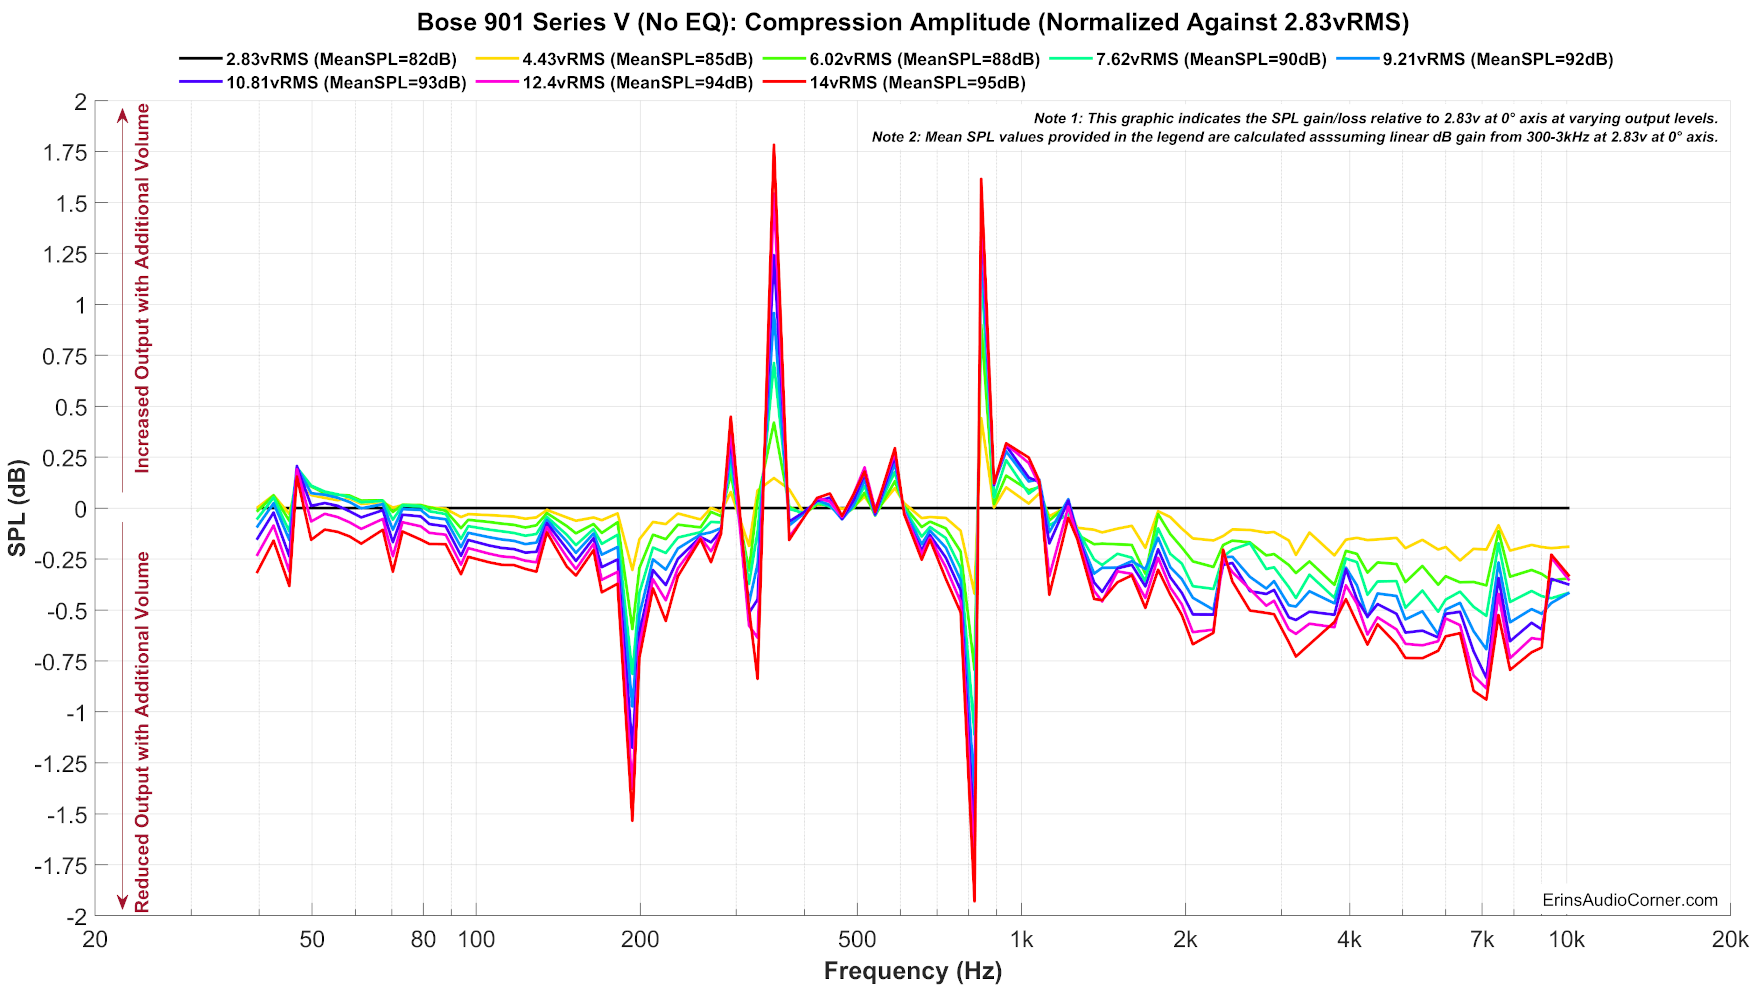 Bose%20901%20Series%20V%20(No%20EQ)_Compression_Normalized.png